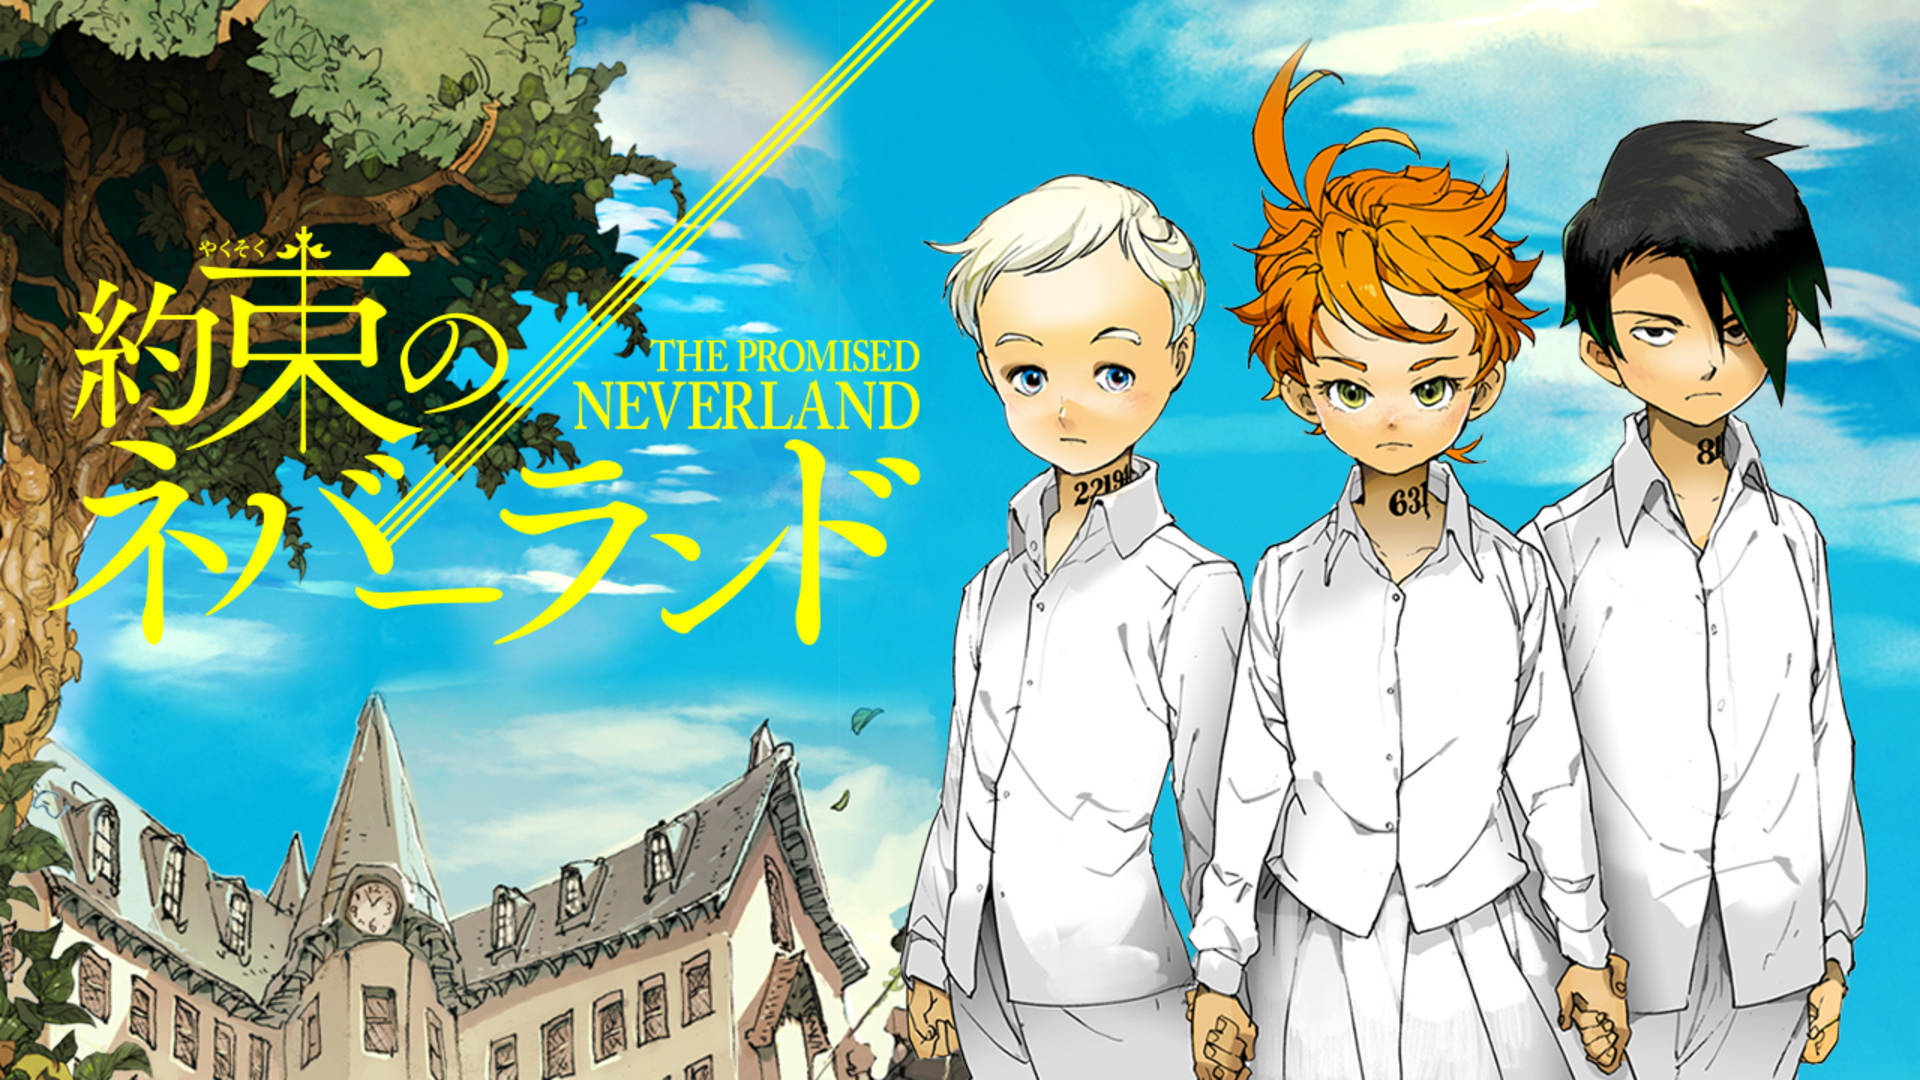 The Promised Neverland' TV Anime Announced for 2019